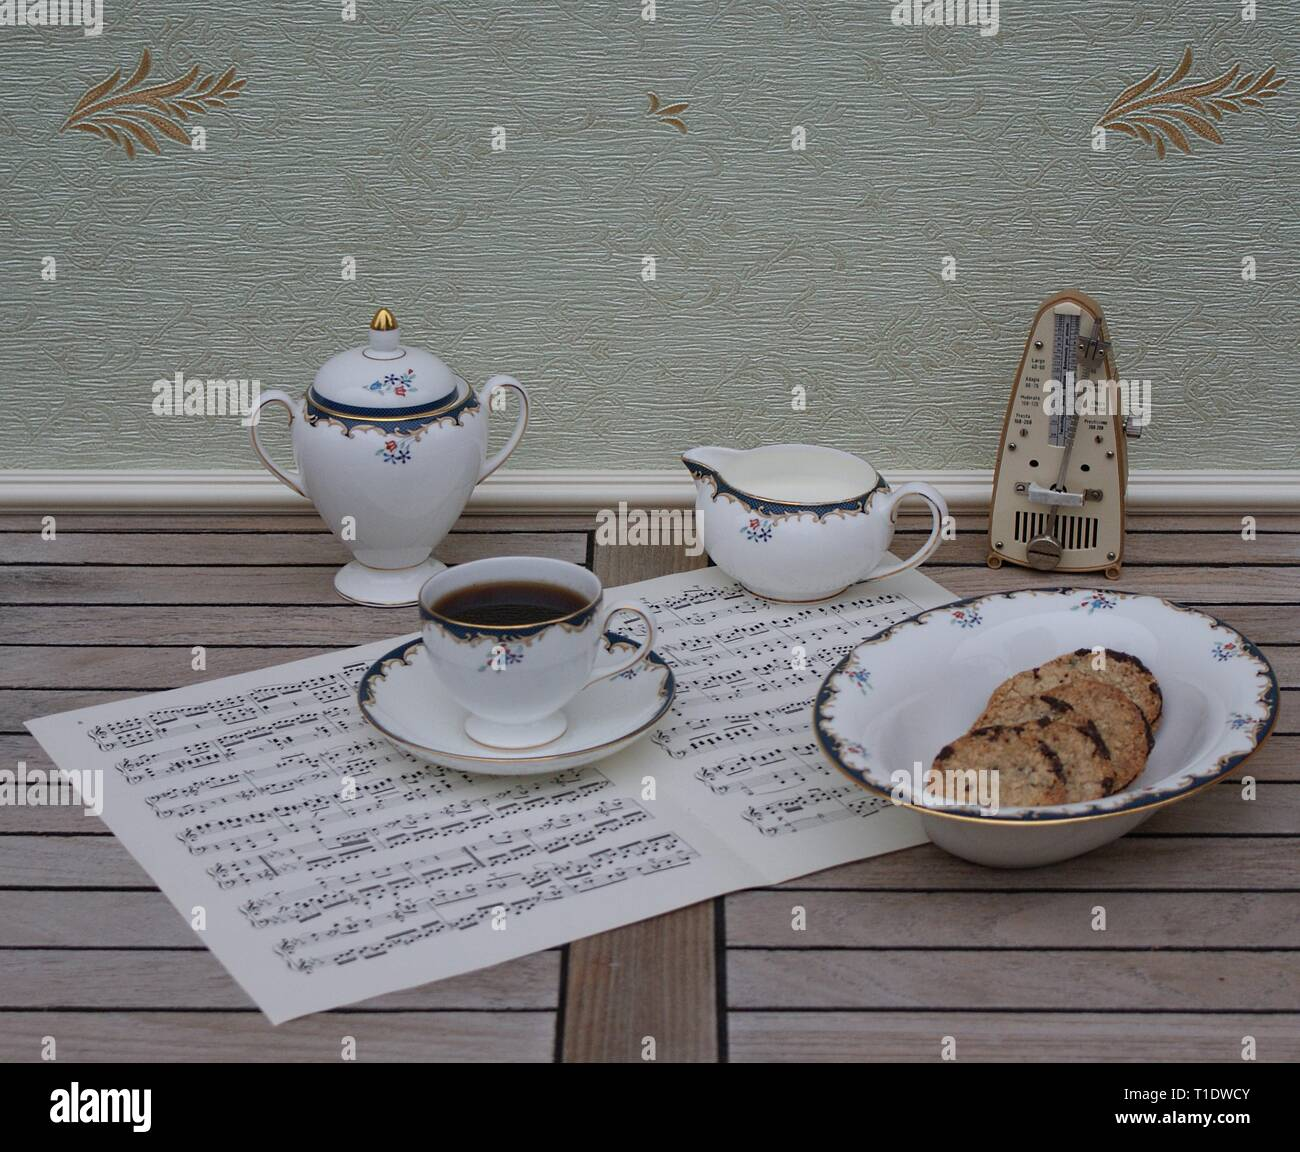 English teacup with saucer, cream jug, sugar bowl and a cake bowl, fine bone china porcelain, and a metronome for music on a sheet of music - Stock Image